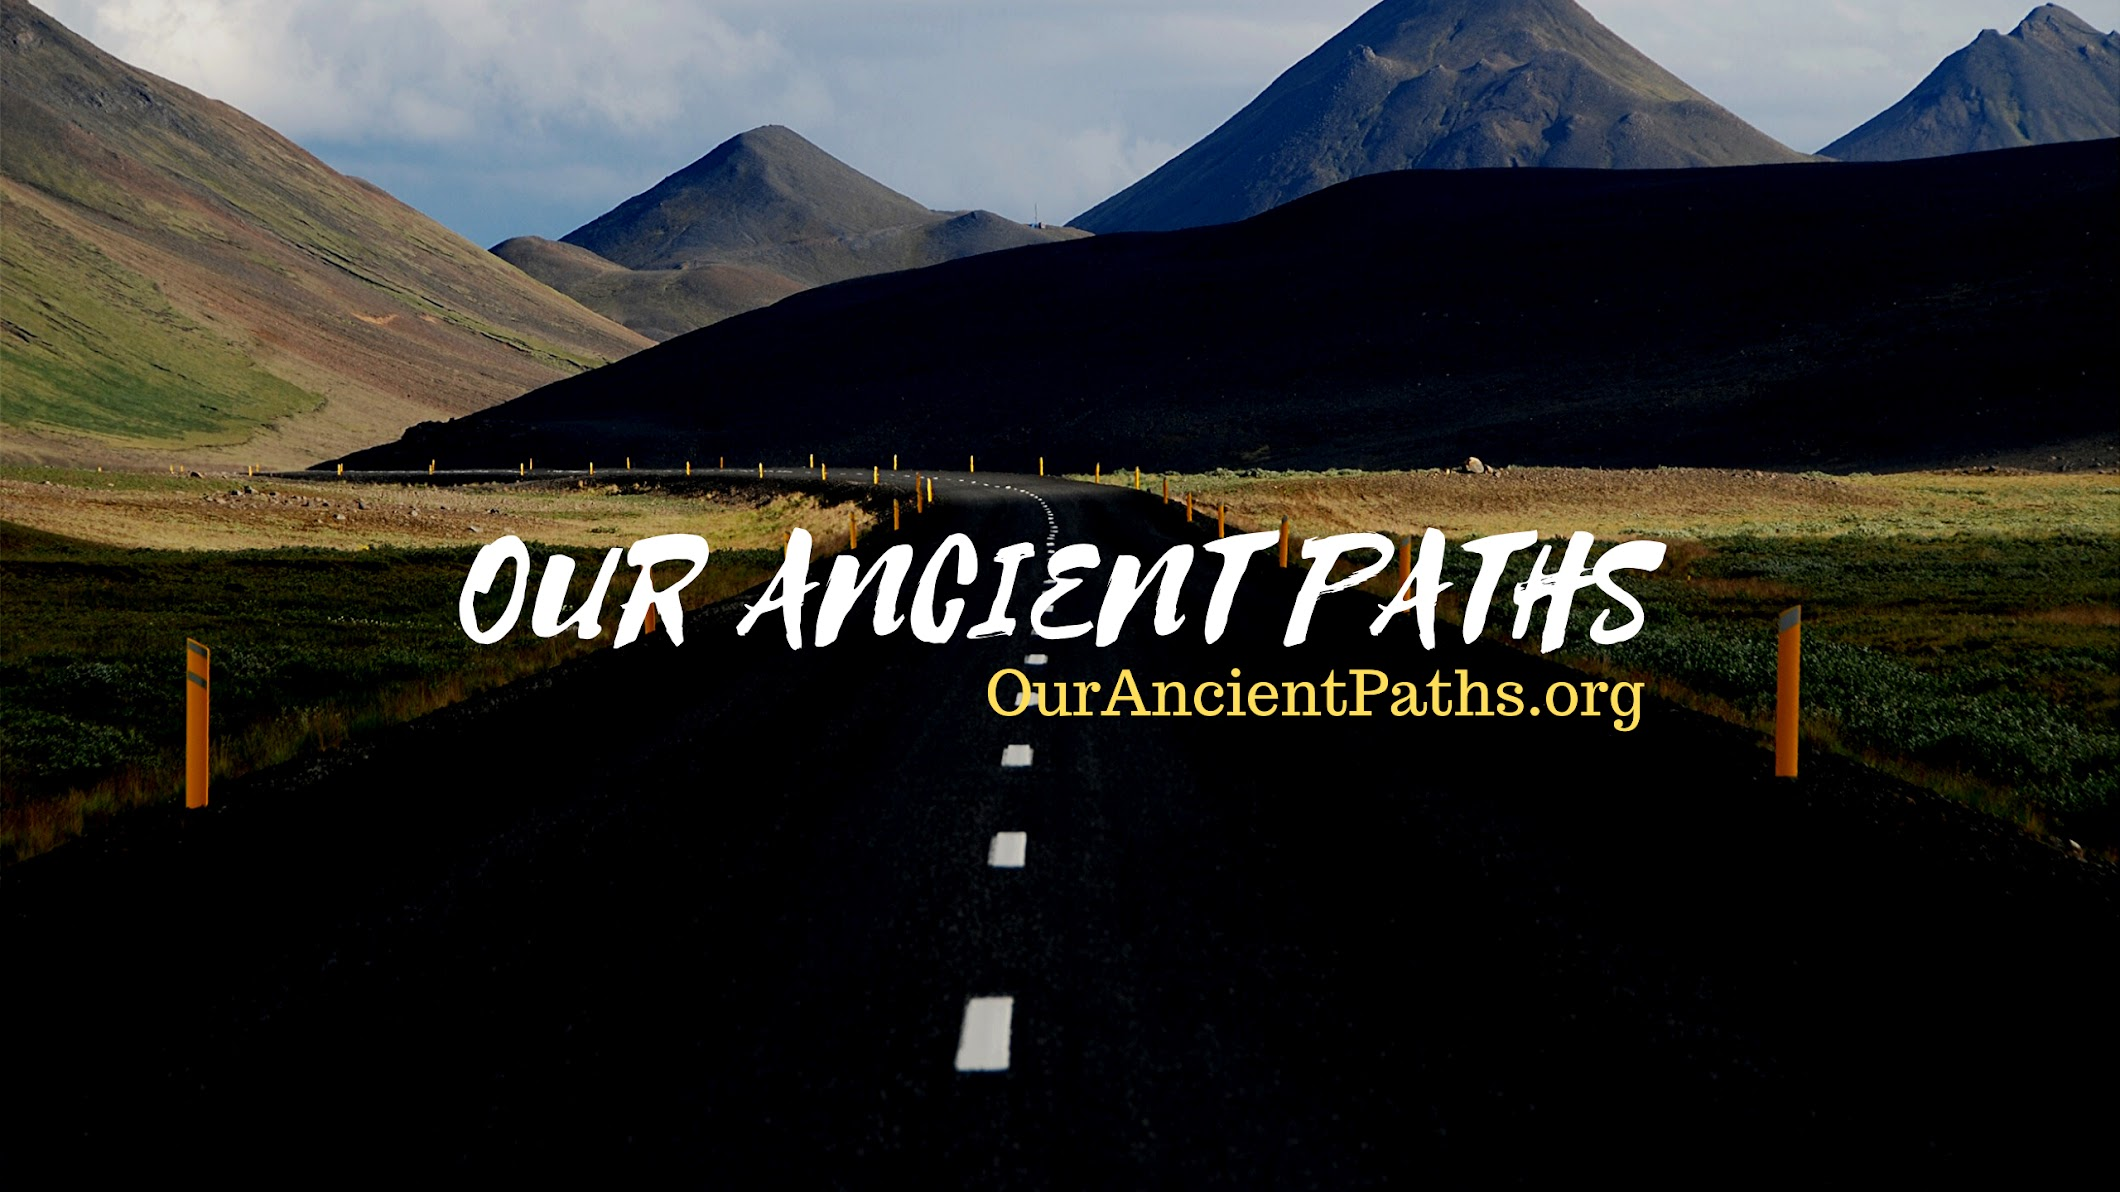 Our Ancient Paths